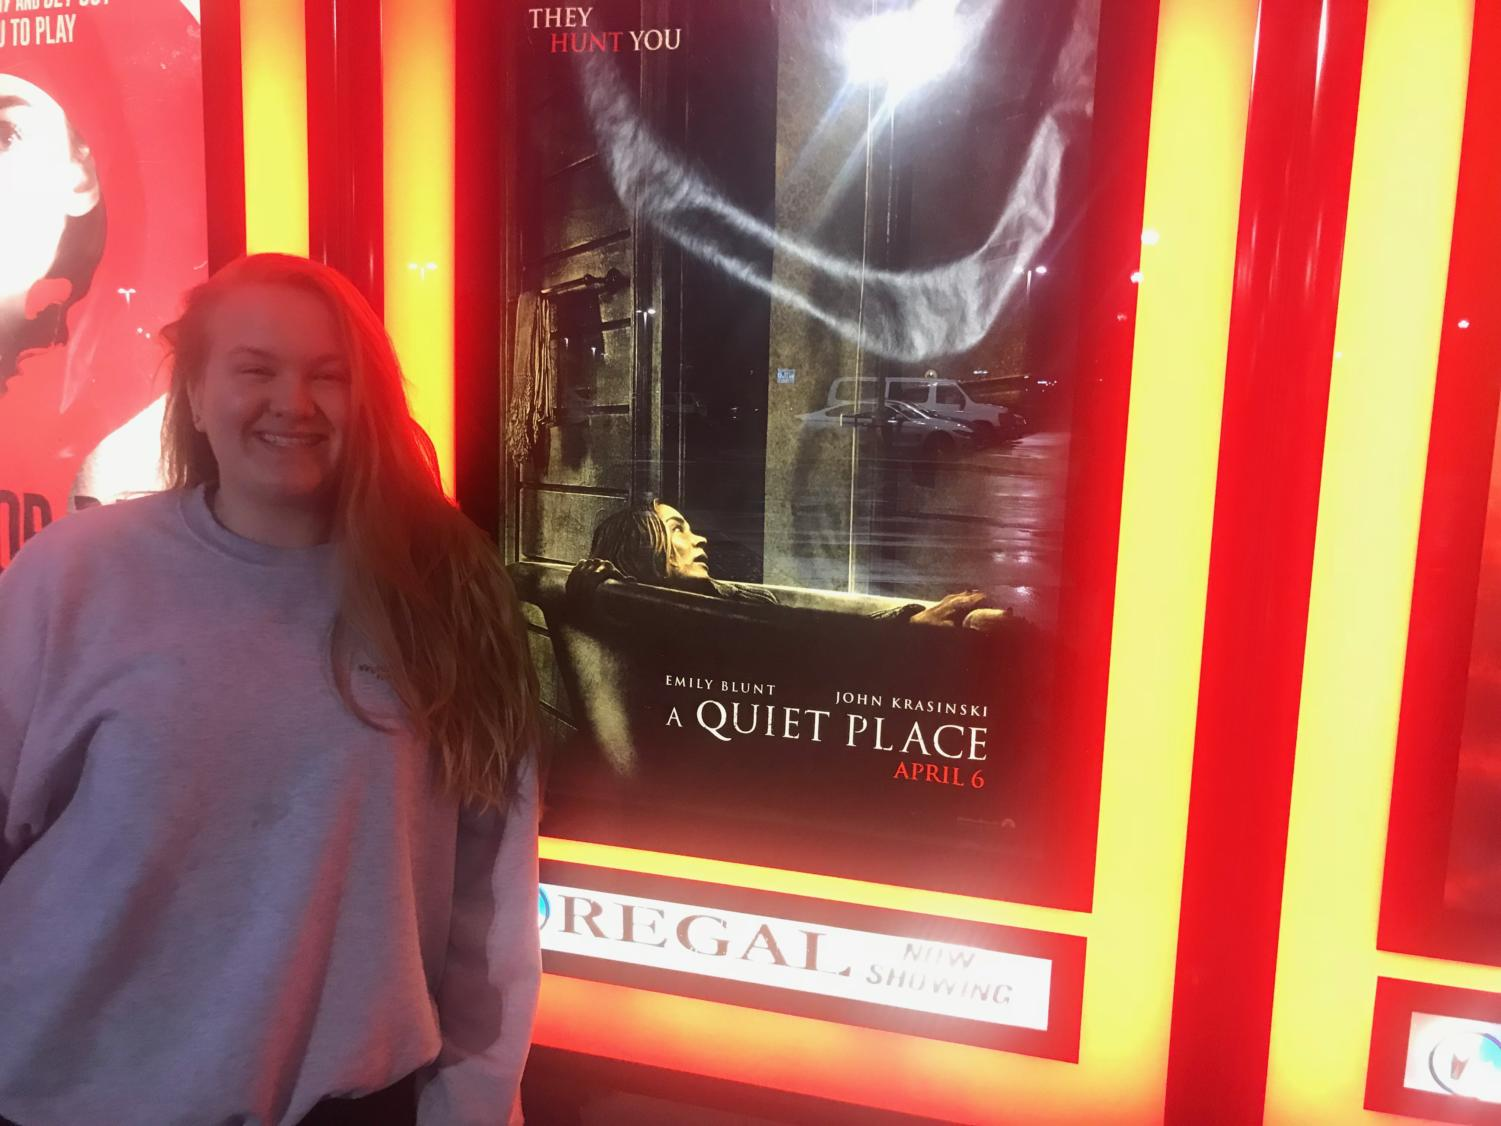 Samantha Johnson is excited to see A Quiet Place.